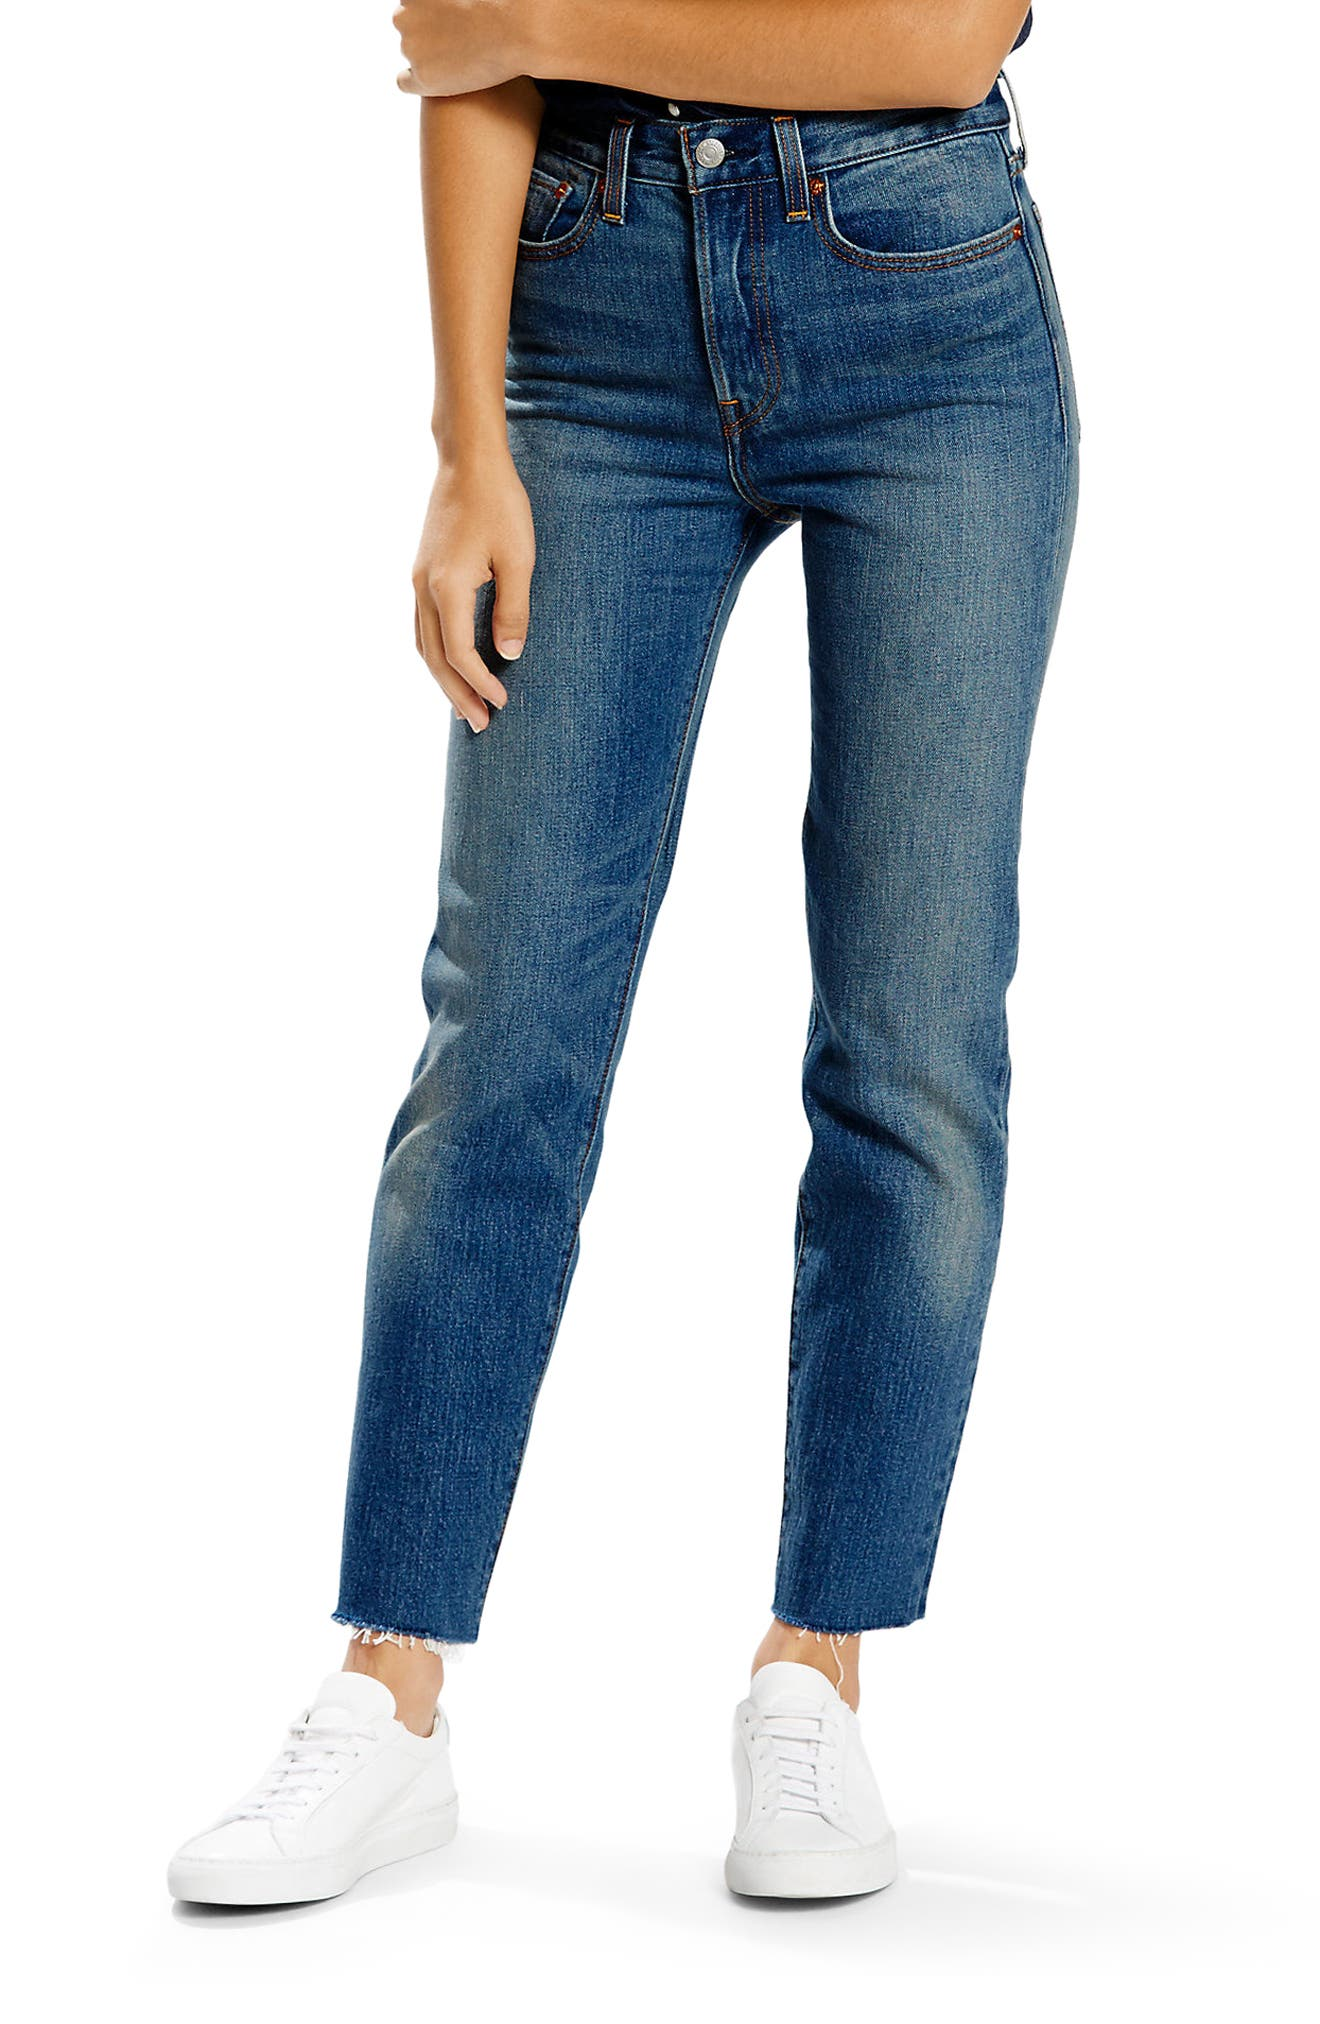 Wedgie High Waist Straight Jeans,                         Main,                         color, Classic Tint